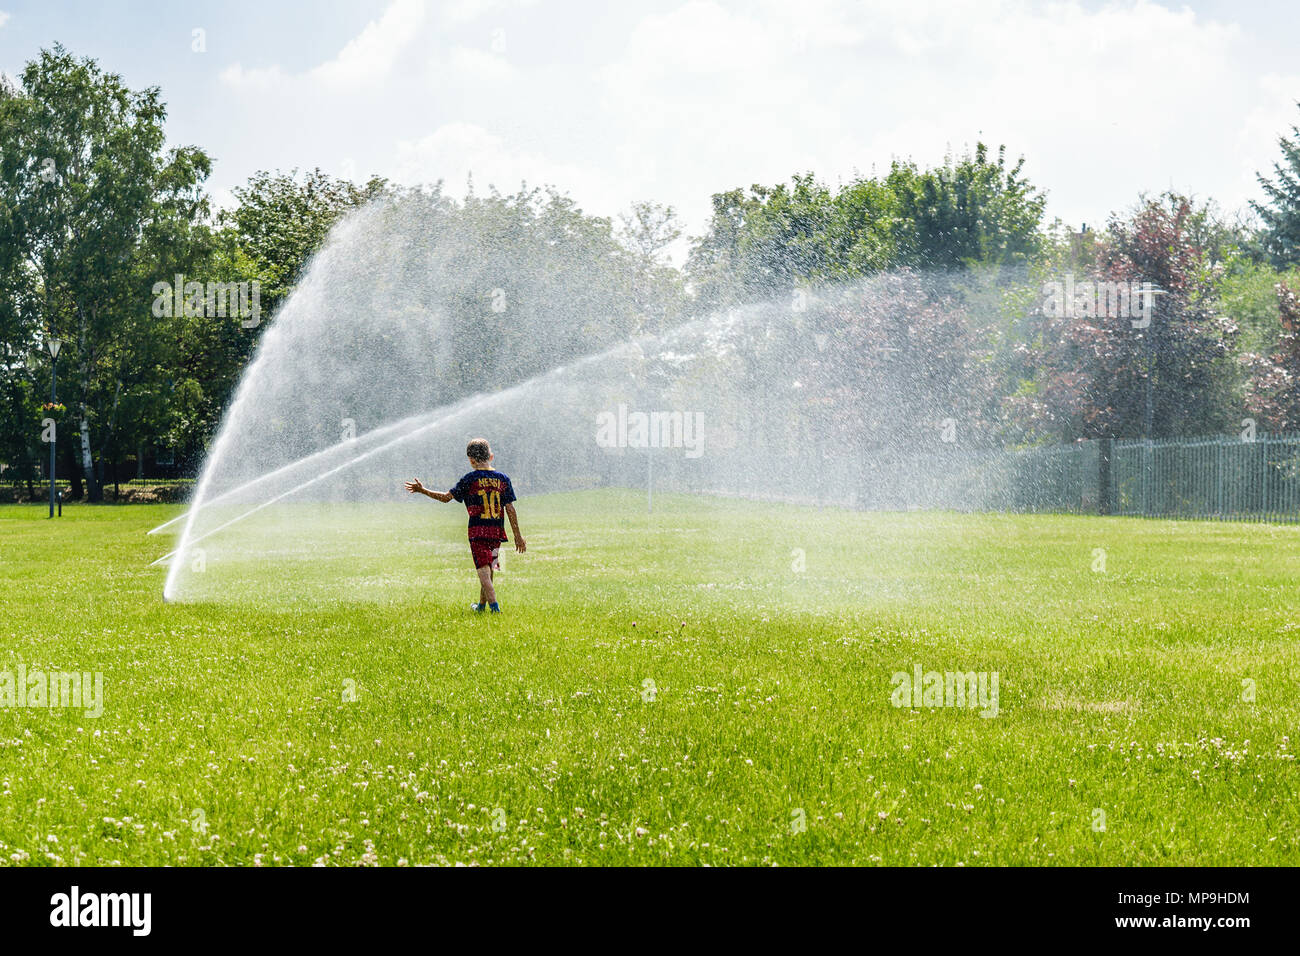 A little boy in football outfit is sprayed by water sprinklers in public park in Gliwice, Silesian Upland, Poland. - Stock Image